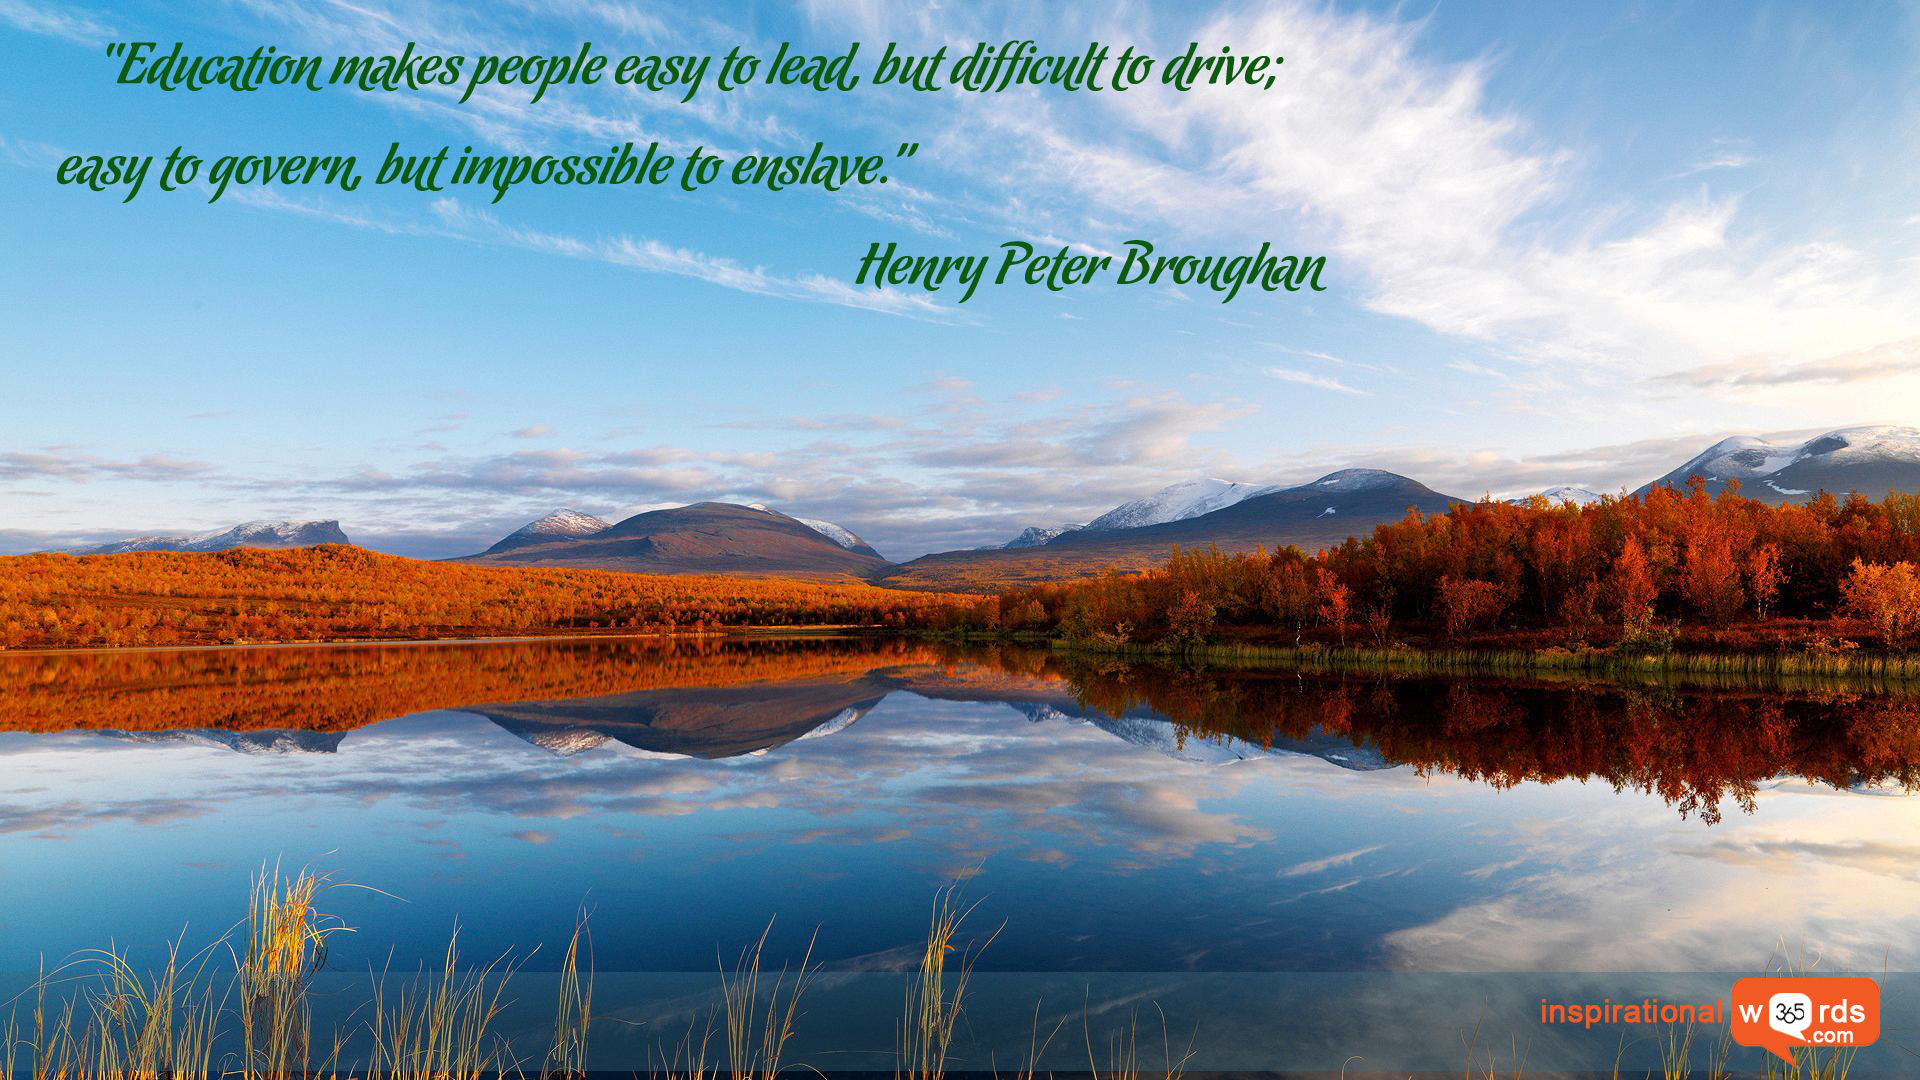 Inspirational Wallpaper Quote by Henry Peter Broughan